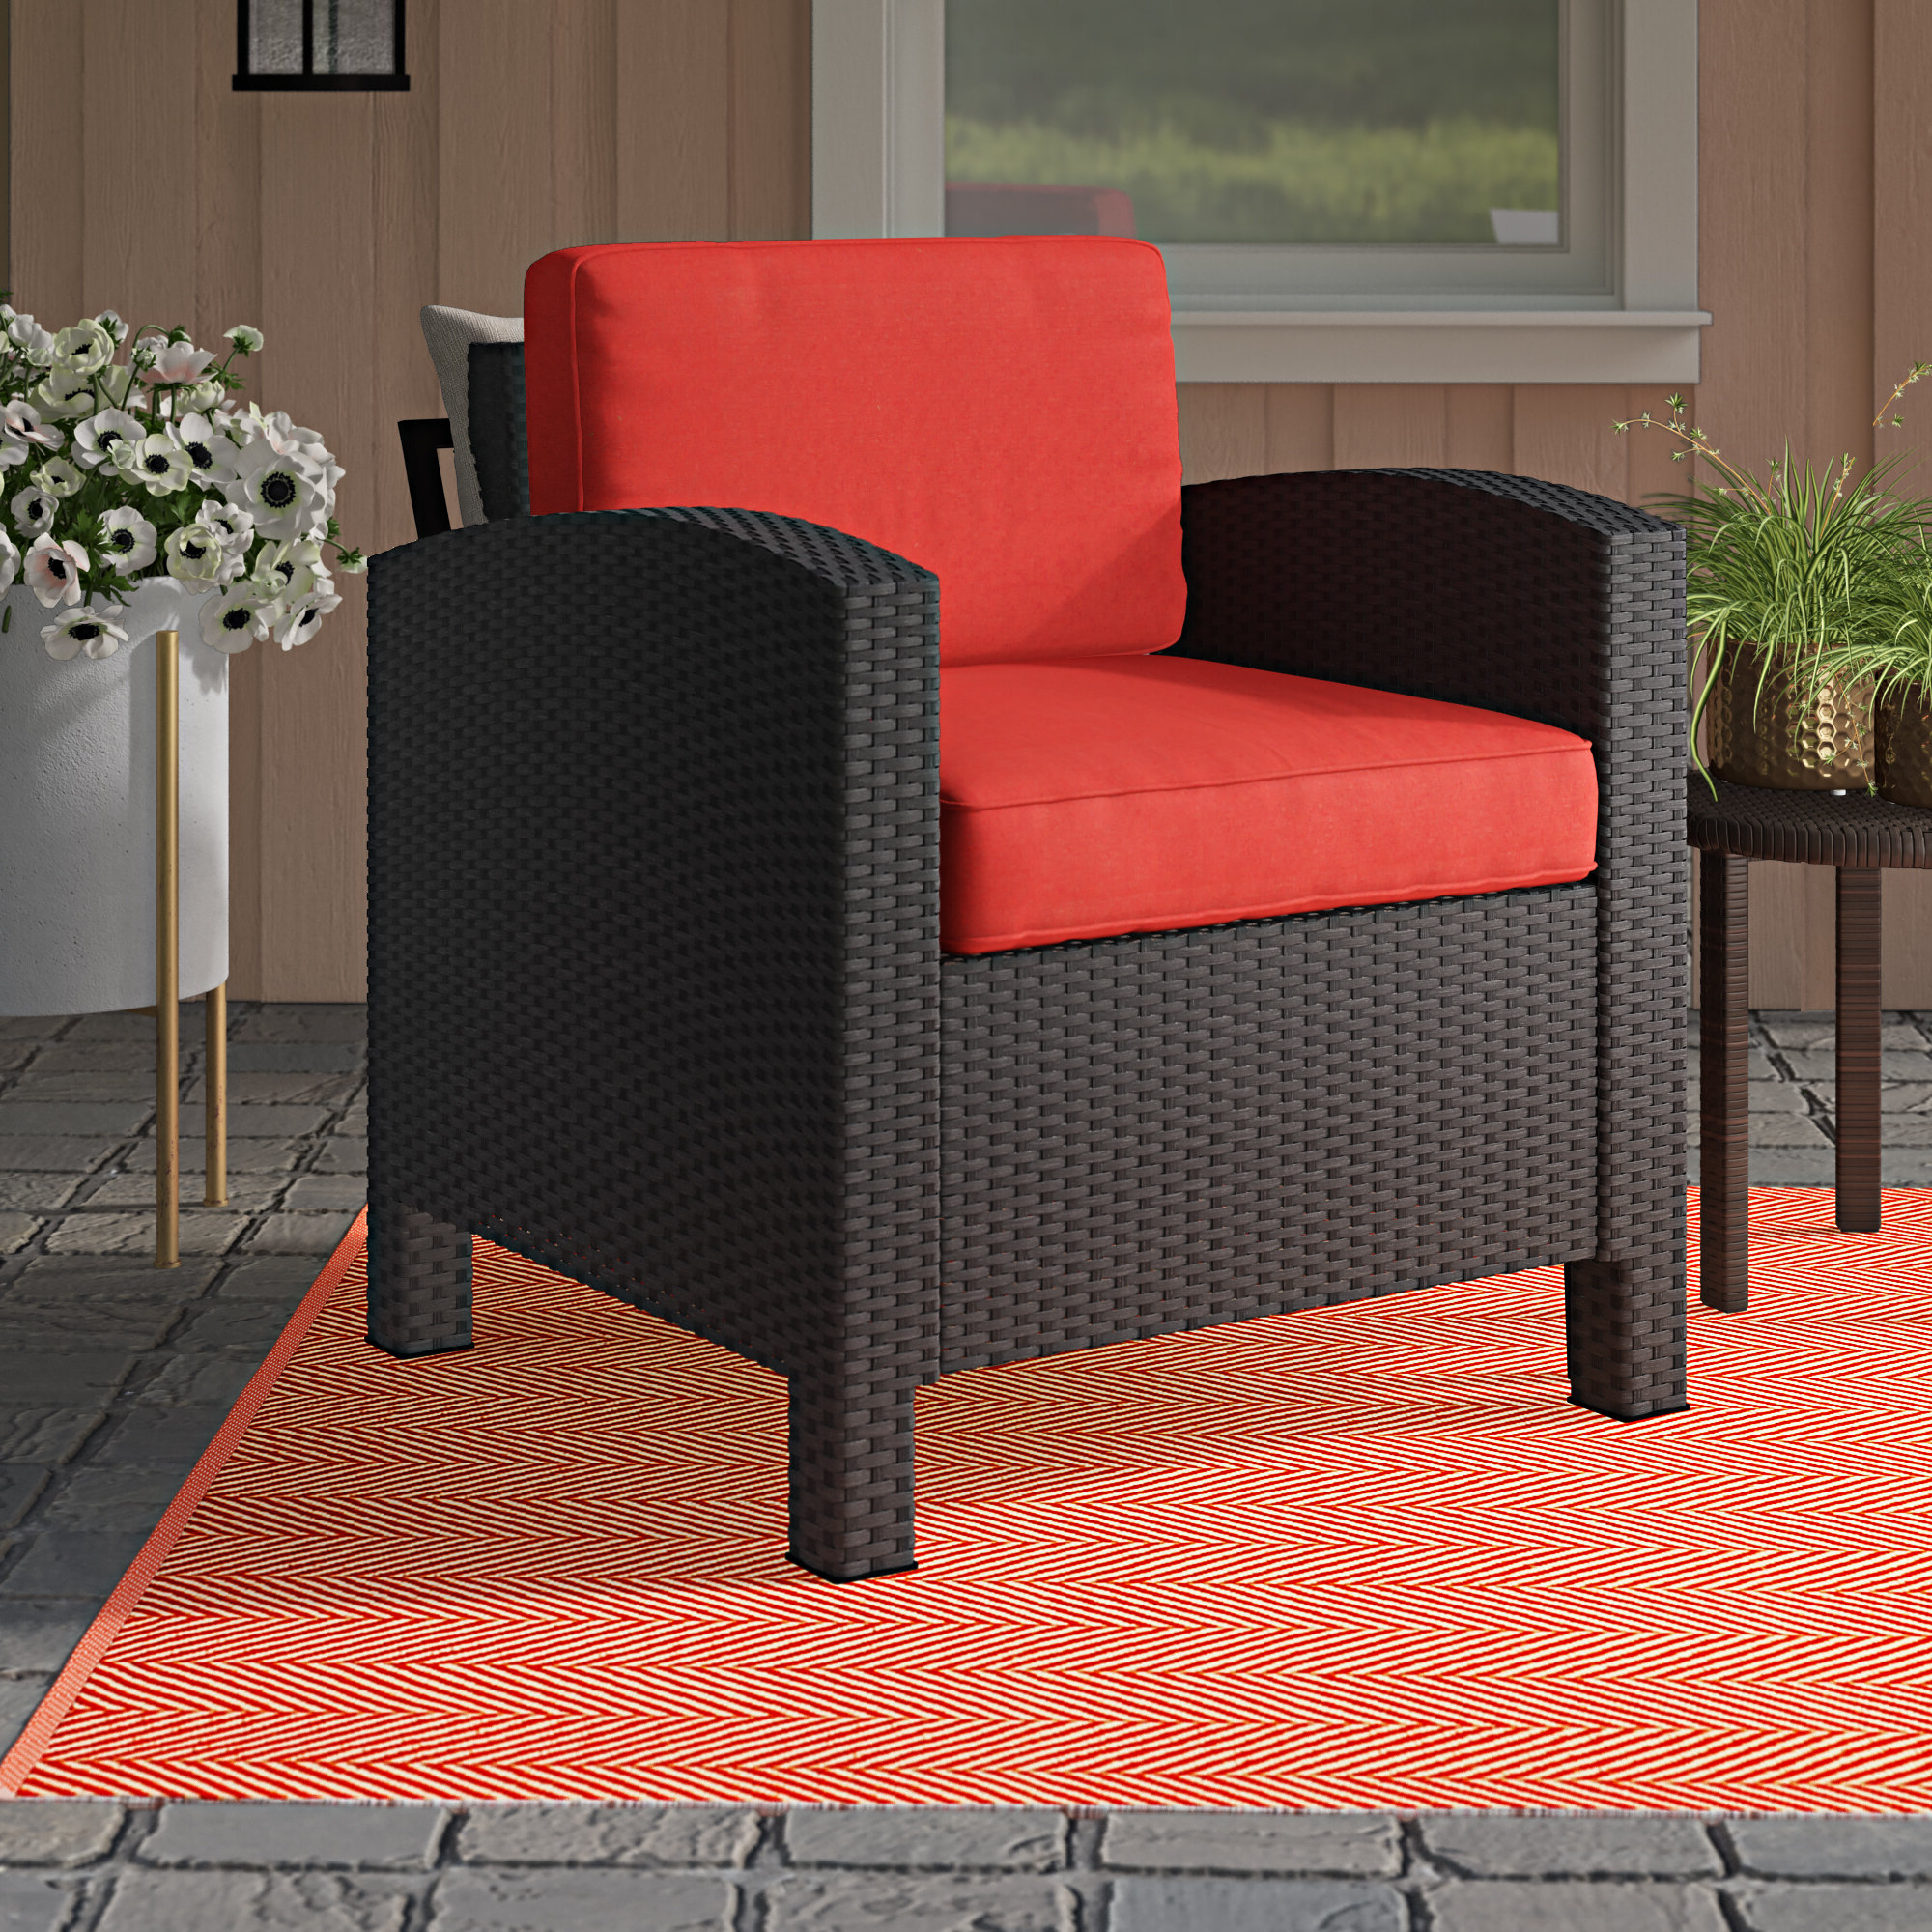 Stapleton Wicker Resin Patio Sofas With Cushions Intended For Well Known Katzer Wicker Resin Aluminum Contemporary Patio Chair With Cushion (View 14 of 20)